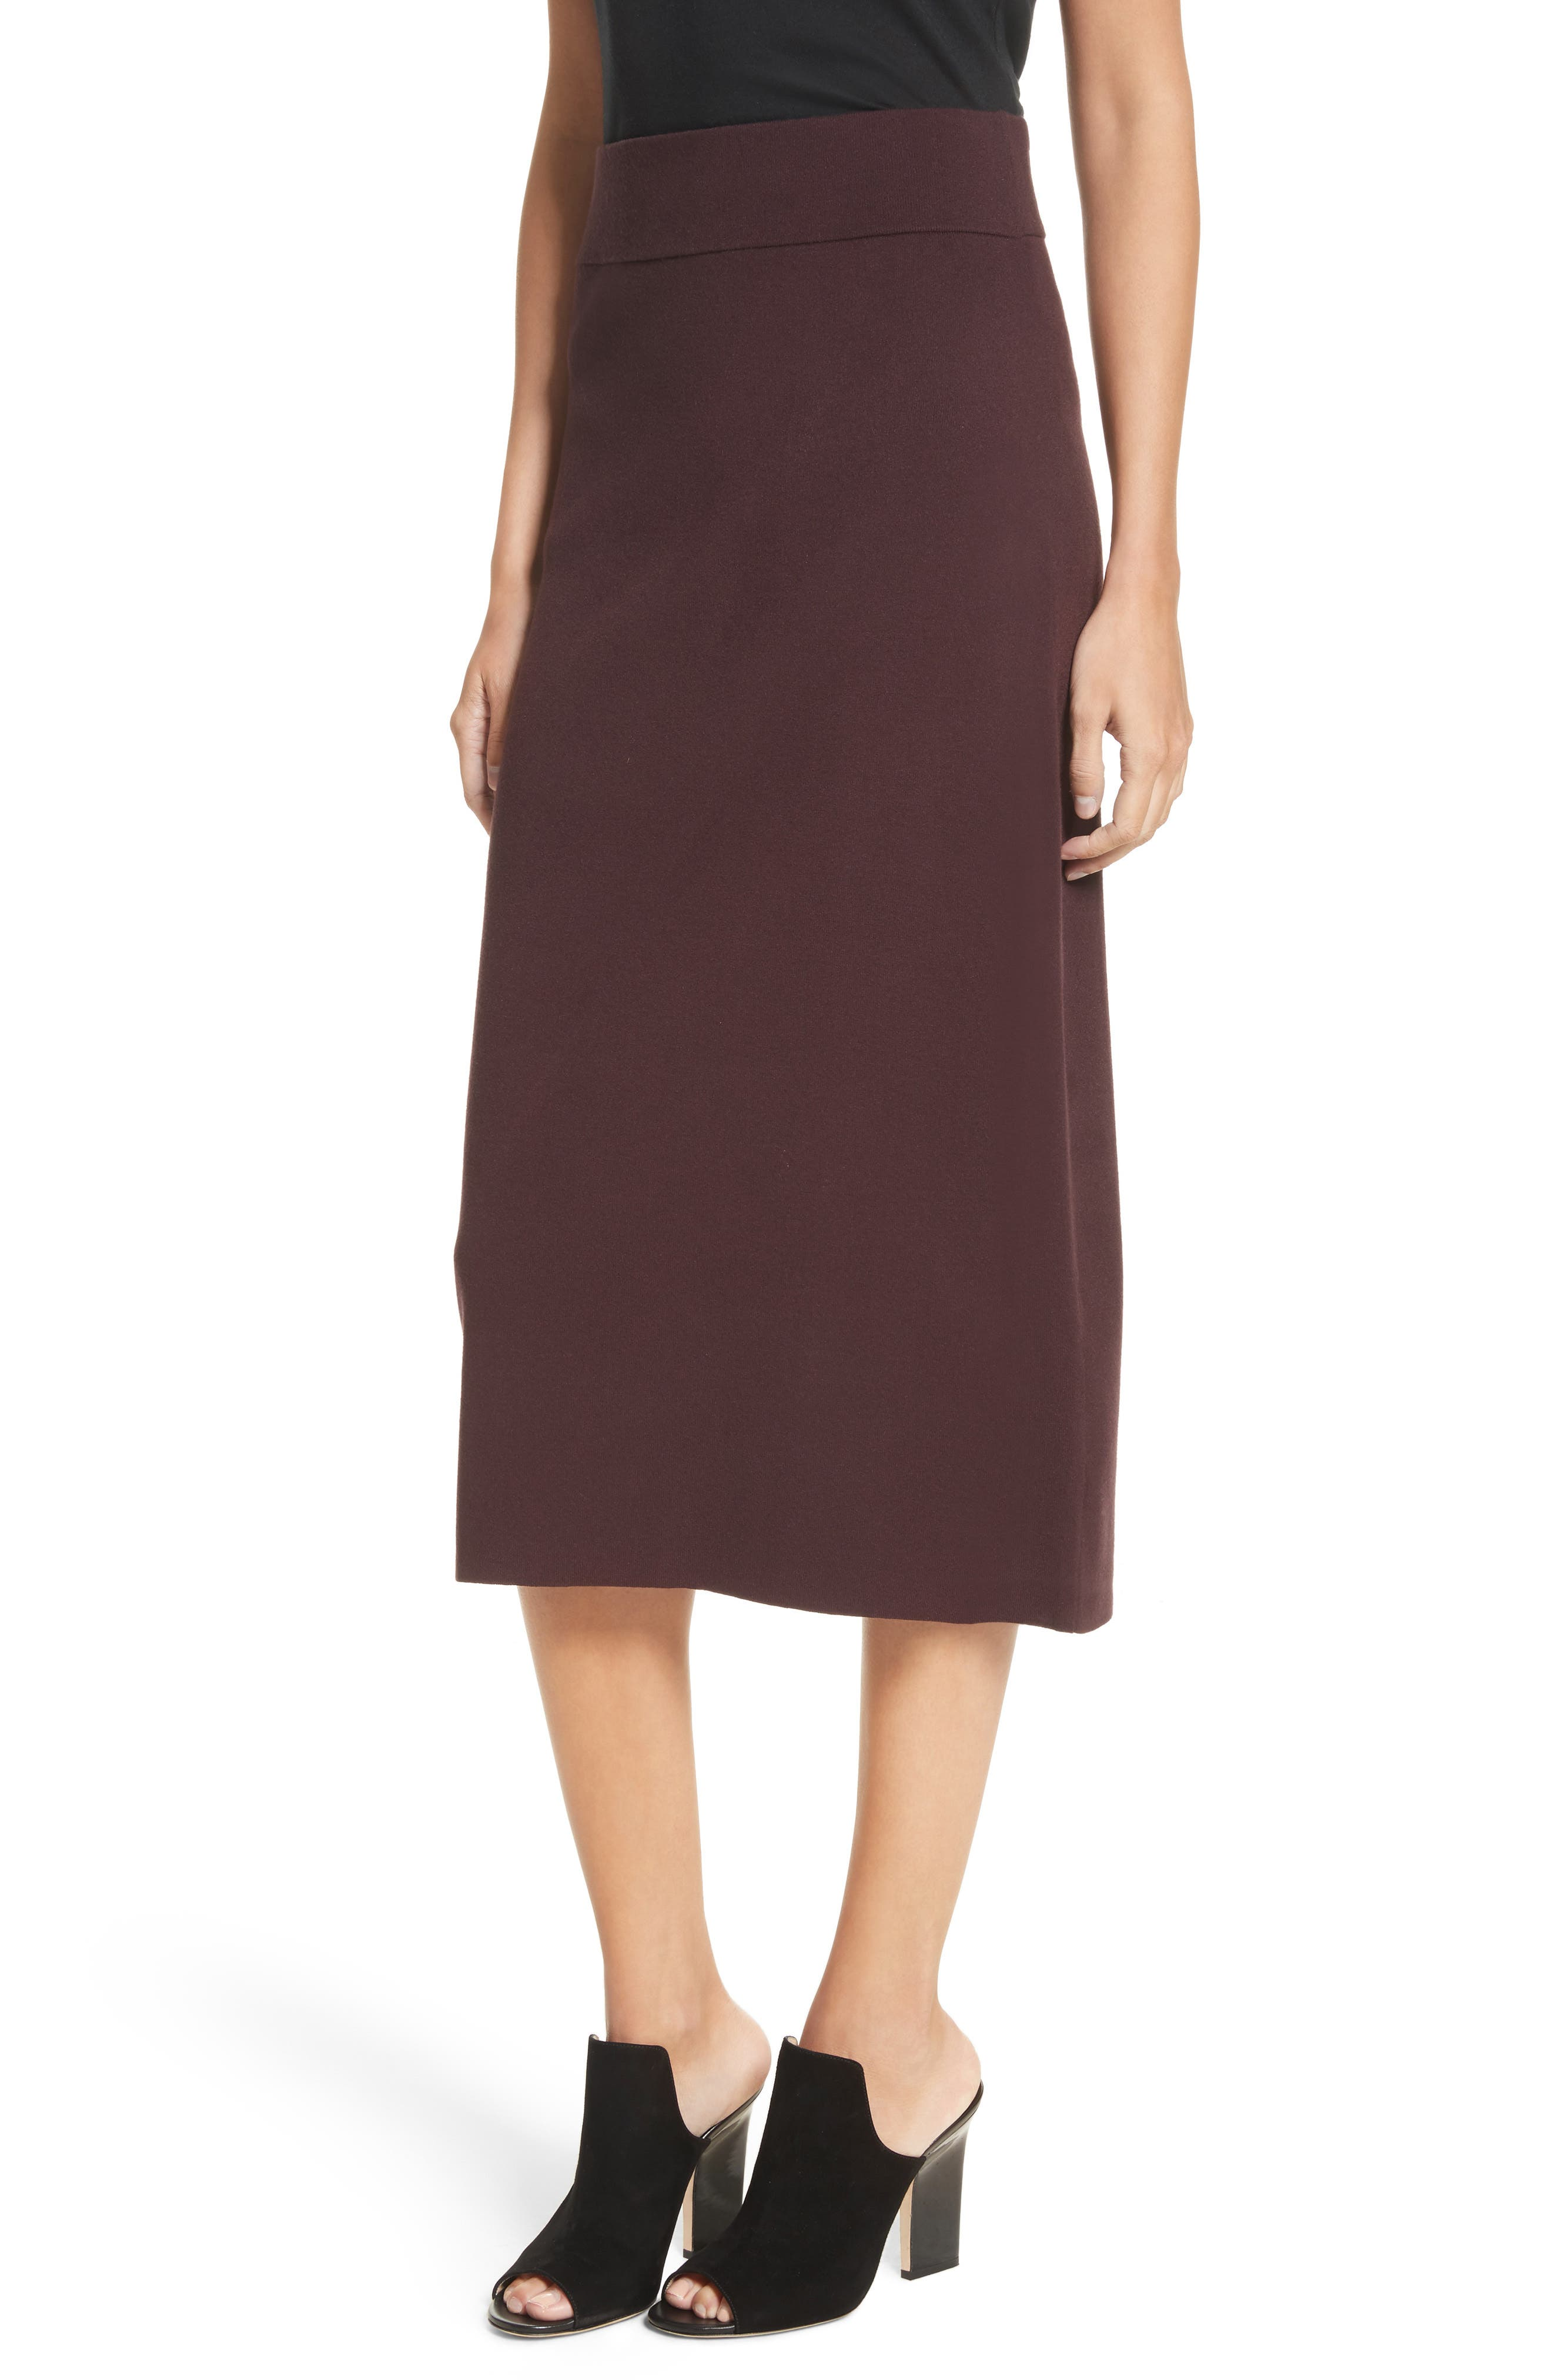 Smith Knit Pencil Skirt,                             Alternate thumbnail 5, color,                             Raisin